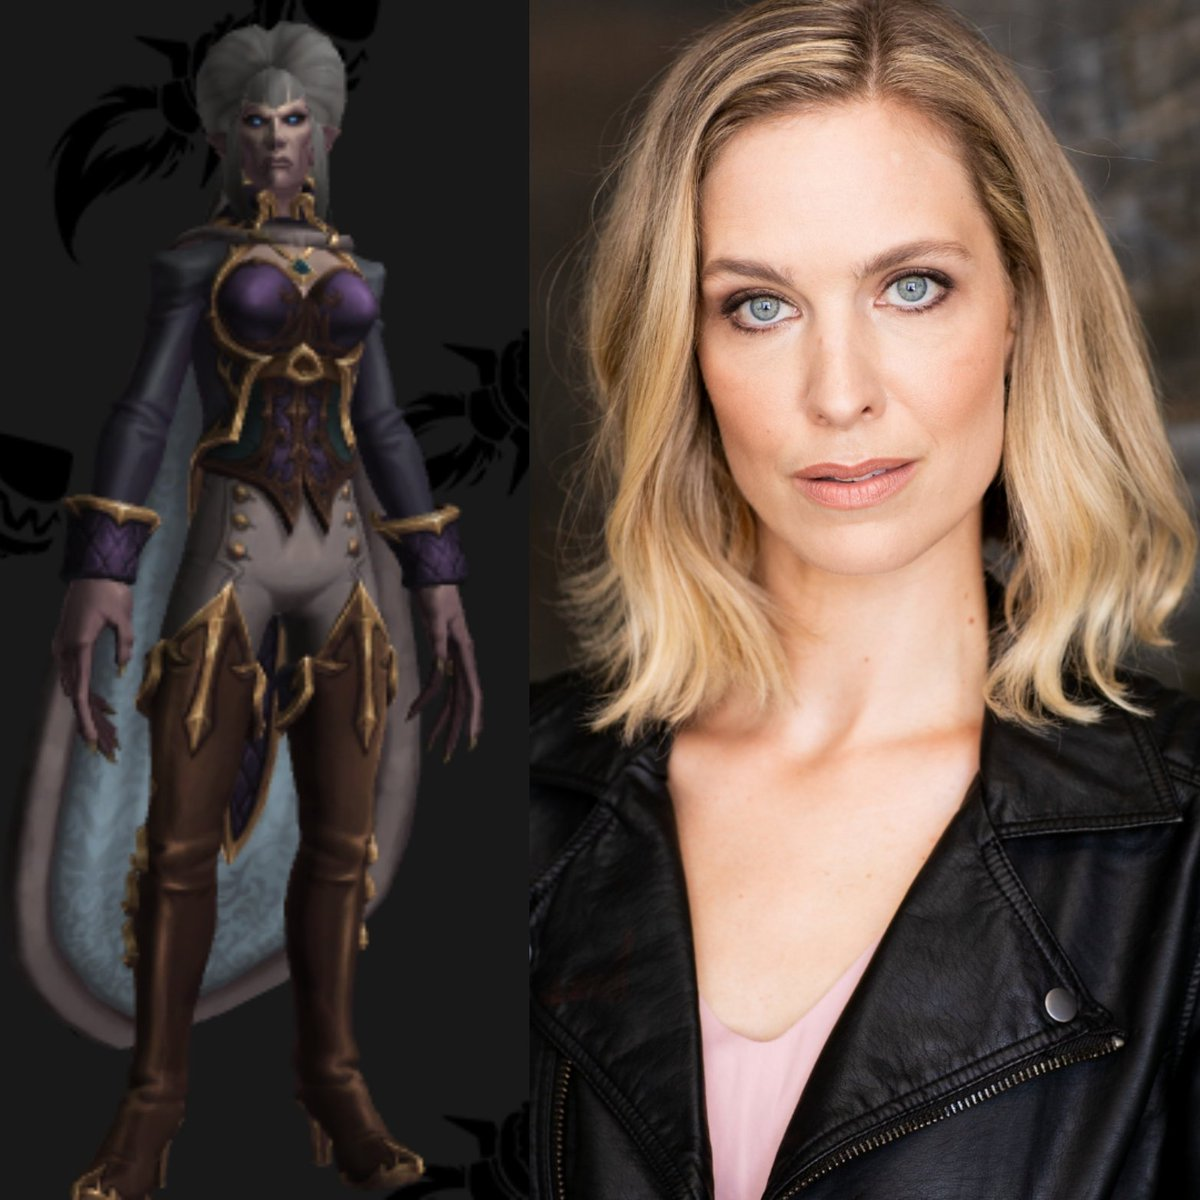 Thrilled to announce that I'm voicing 3 kick-ass characters: VORPALIA, BRANVEN HAMMERHEART + DARK KYRIAN ASPIRANT in the new WORLD OF WARCRAFT SHADOWLANDS RELEASE now LIVE! 🔥  #Warcraft #voiceactor #vorpalia #videogame #accents #voicecoach   @Blizzard_Ent @Warcraft https://t.co/ak8zHsIFaQ https://t.co/7WkL6xvubK